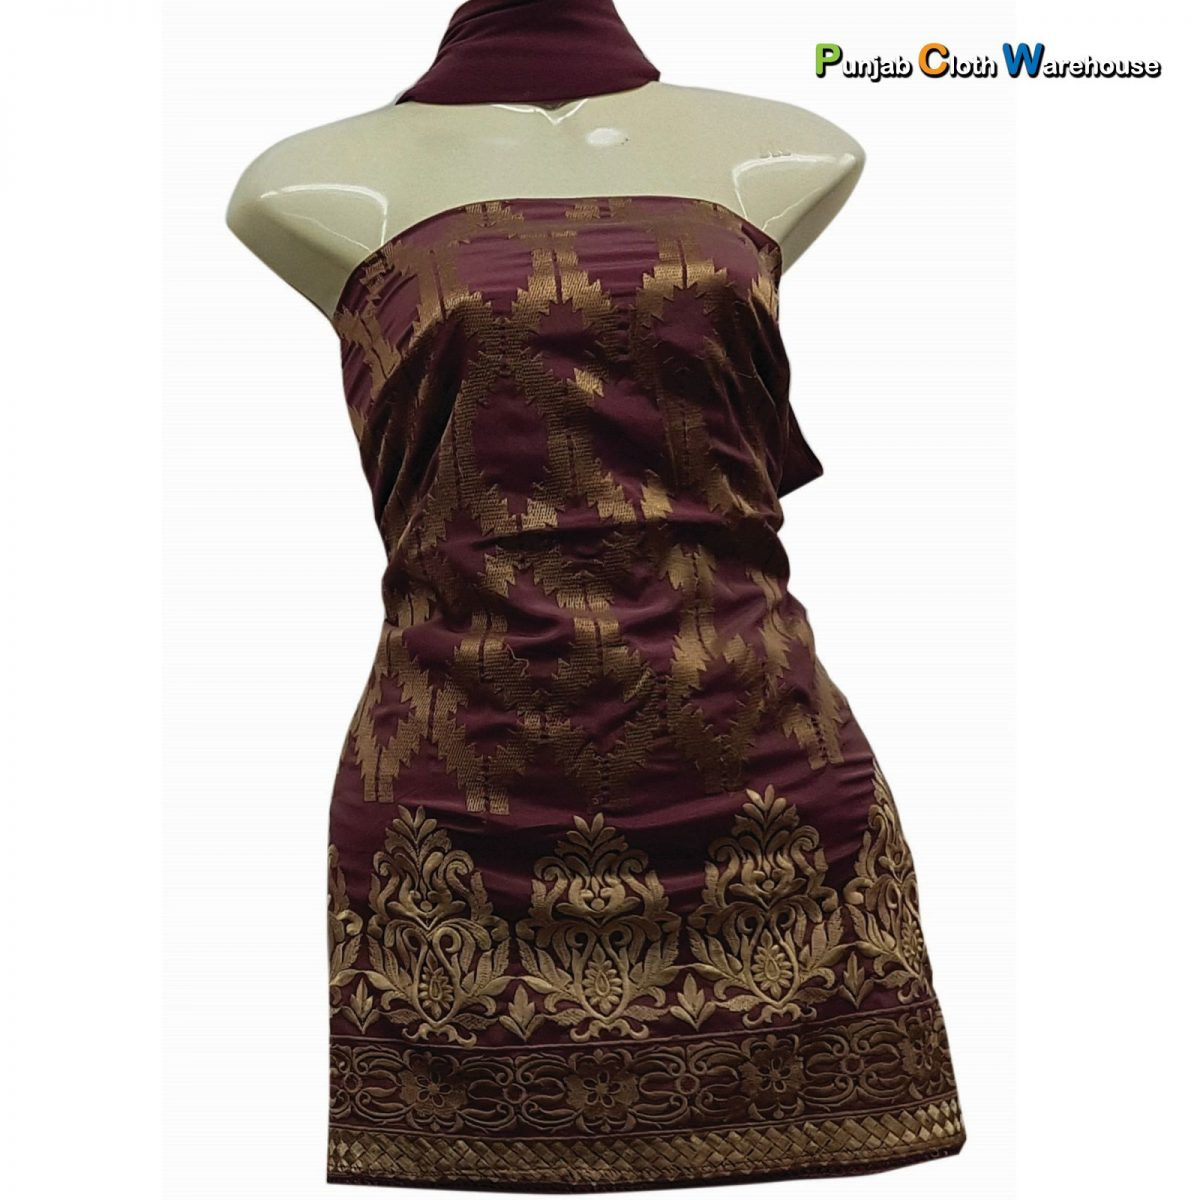 Ladies Suits - Cut Piece - Punjab Cloth Warehouse, Surrey (31)